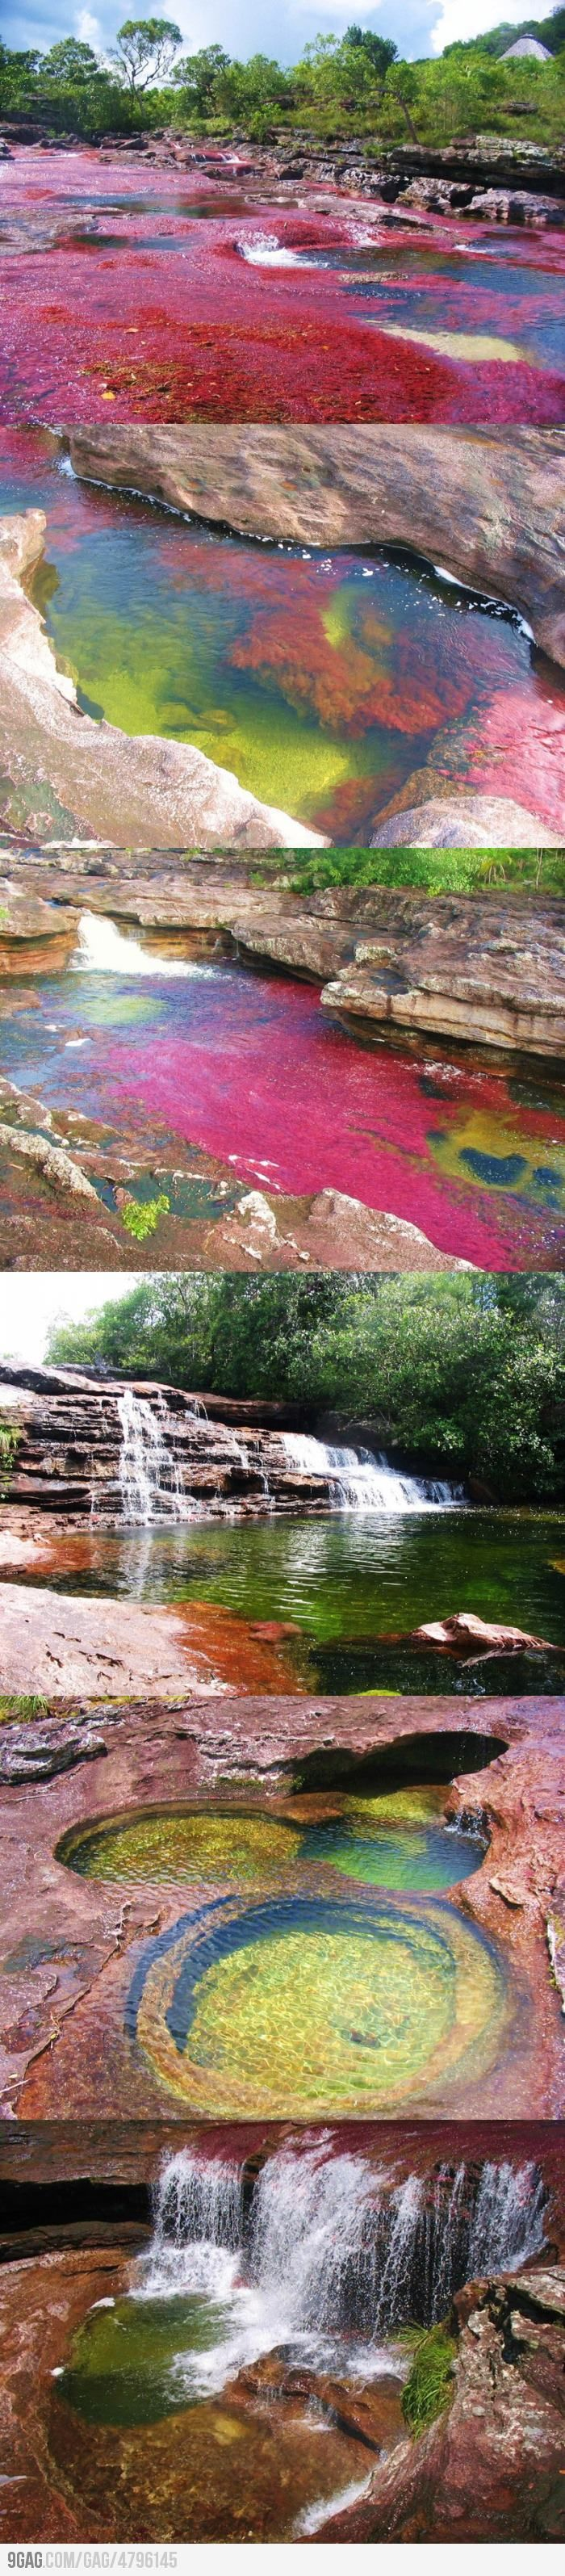 River of Five Colors/ Caño Cristales in Columbia.Caño Cristales is a Colombian river located in the Serrania de la Macarena, province of Meta.